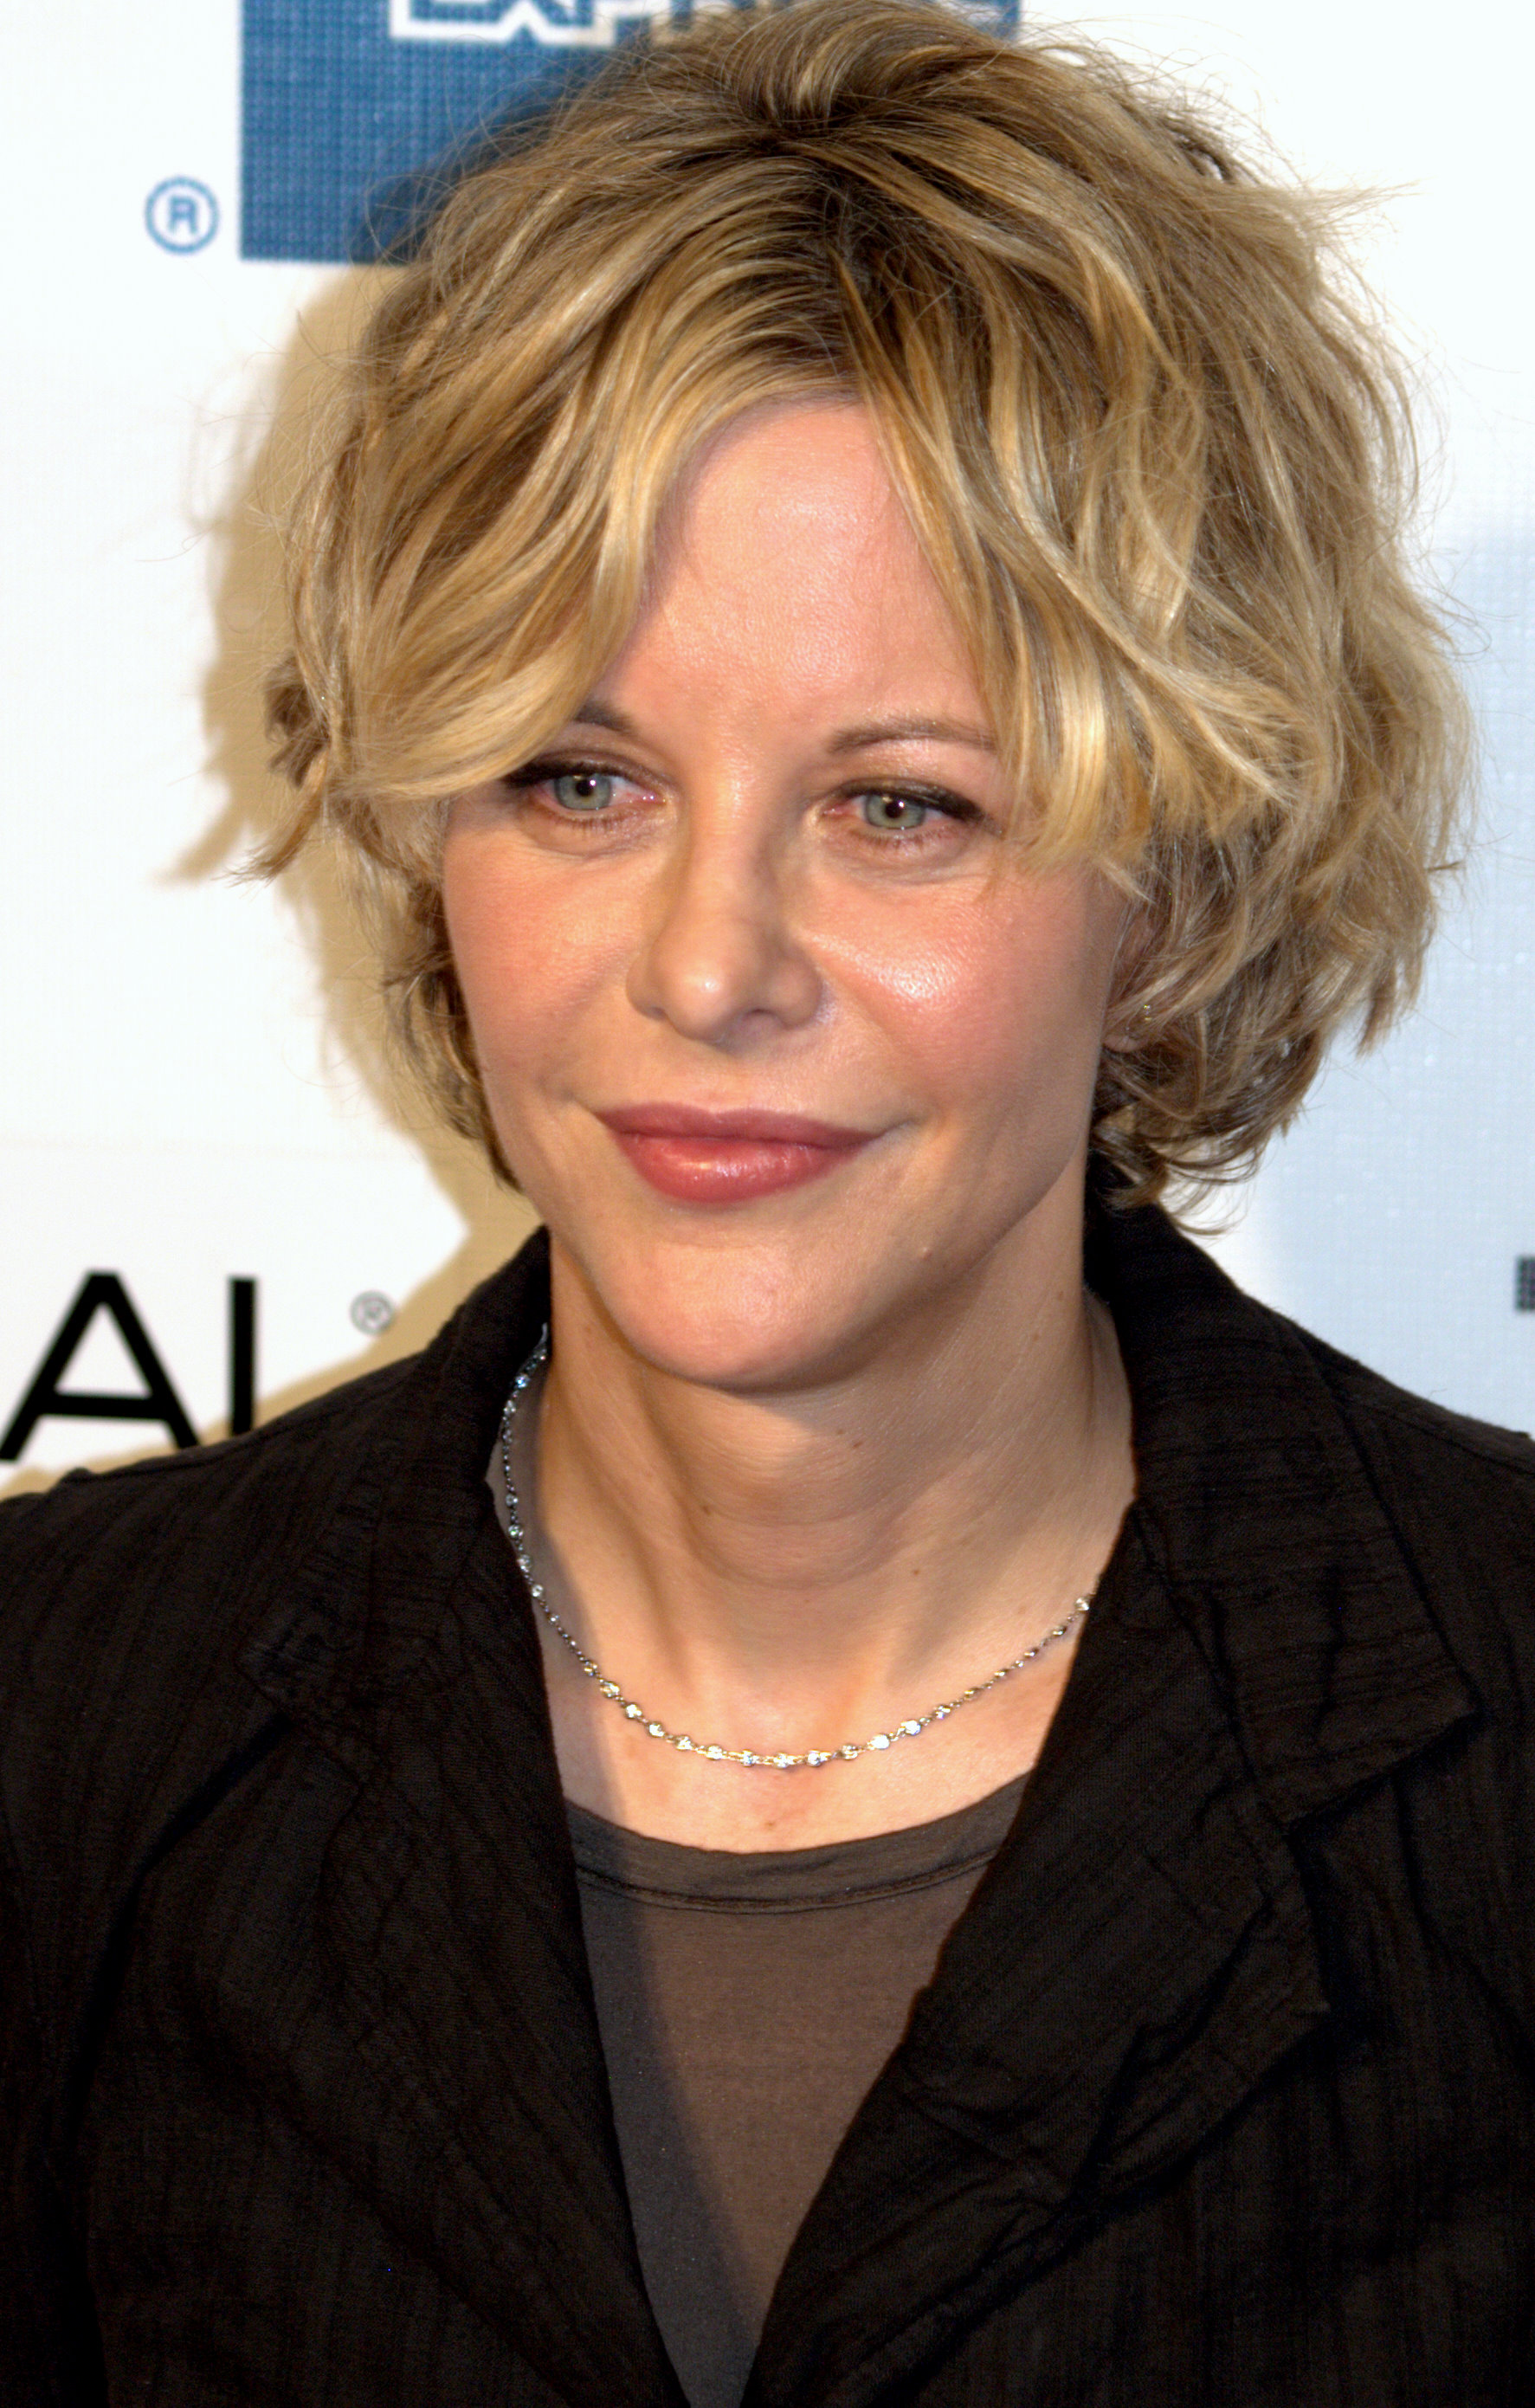 Meg Ryan - Simple English Wikipedia, the free encyclopedia